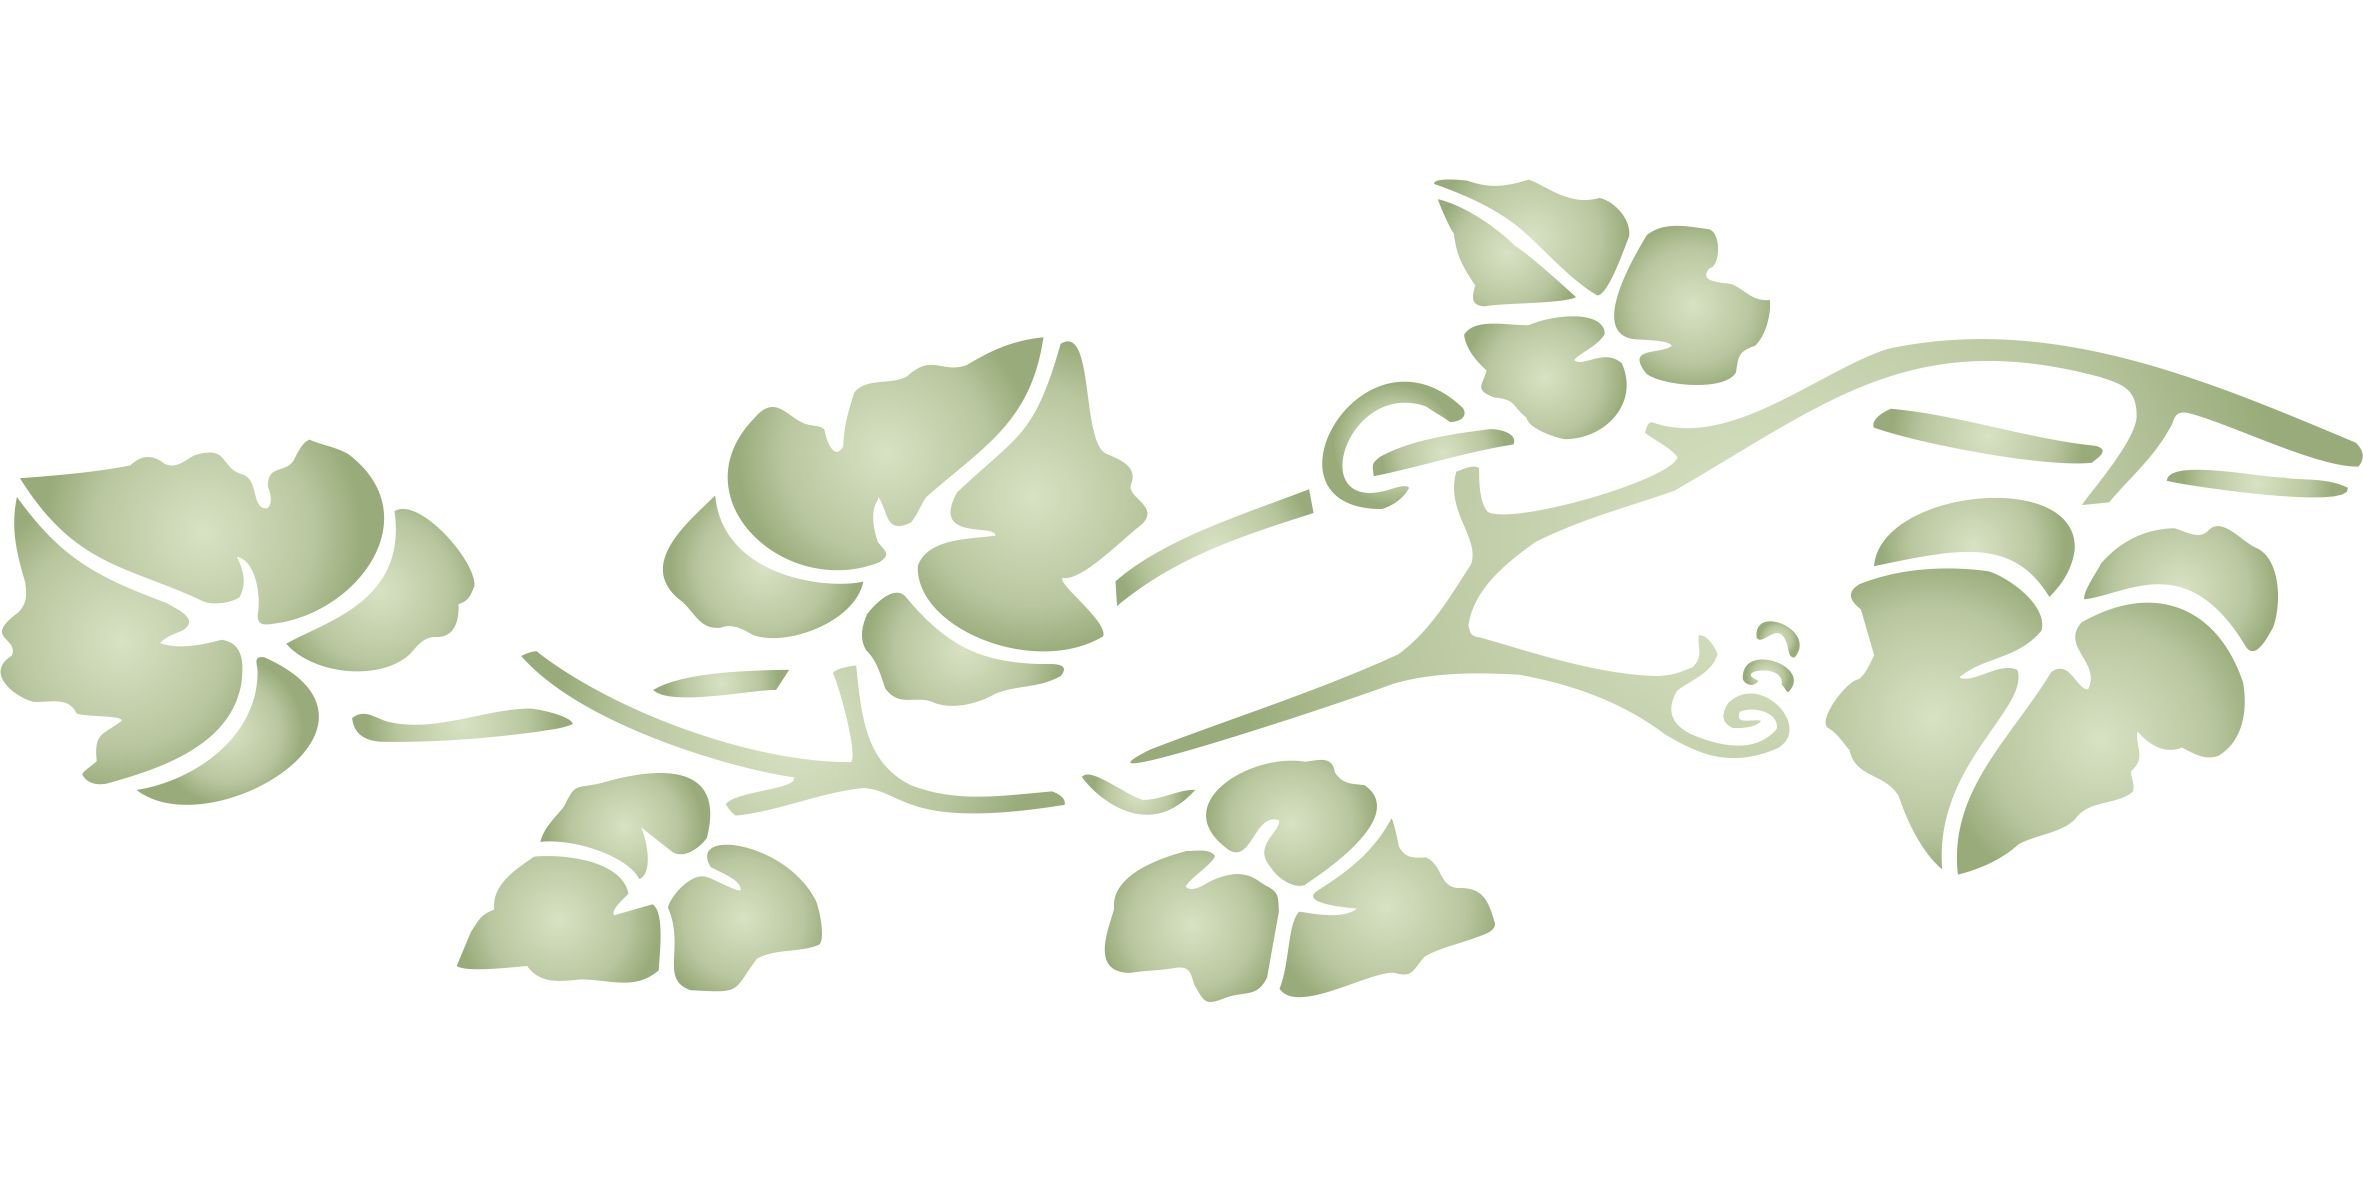 Vine Stencil - (size 13''w x 4.5''h) Reusable Wall Stencils for Painting - Best Quality Wall Border Leaf Stencil Ideas - Use on Walls, Floors, Fabrics, Glass, Wood, Terracotta, and More...